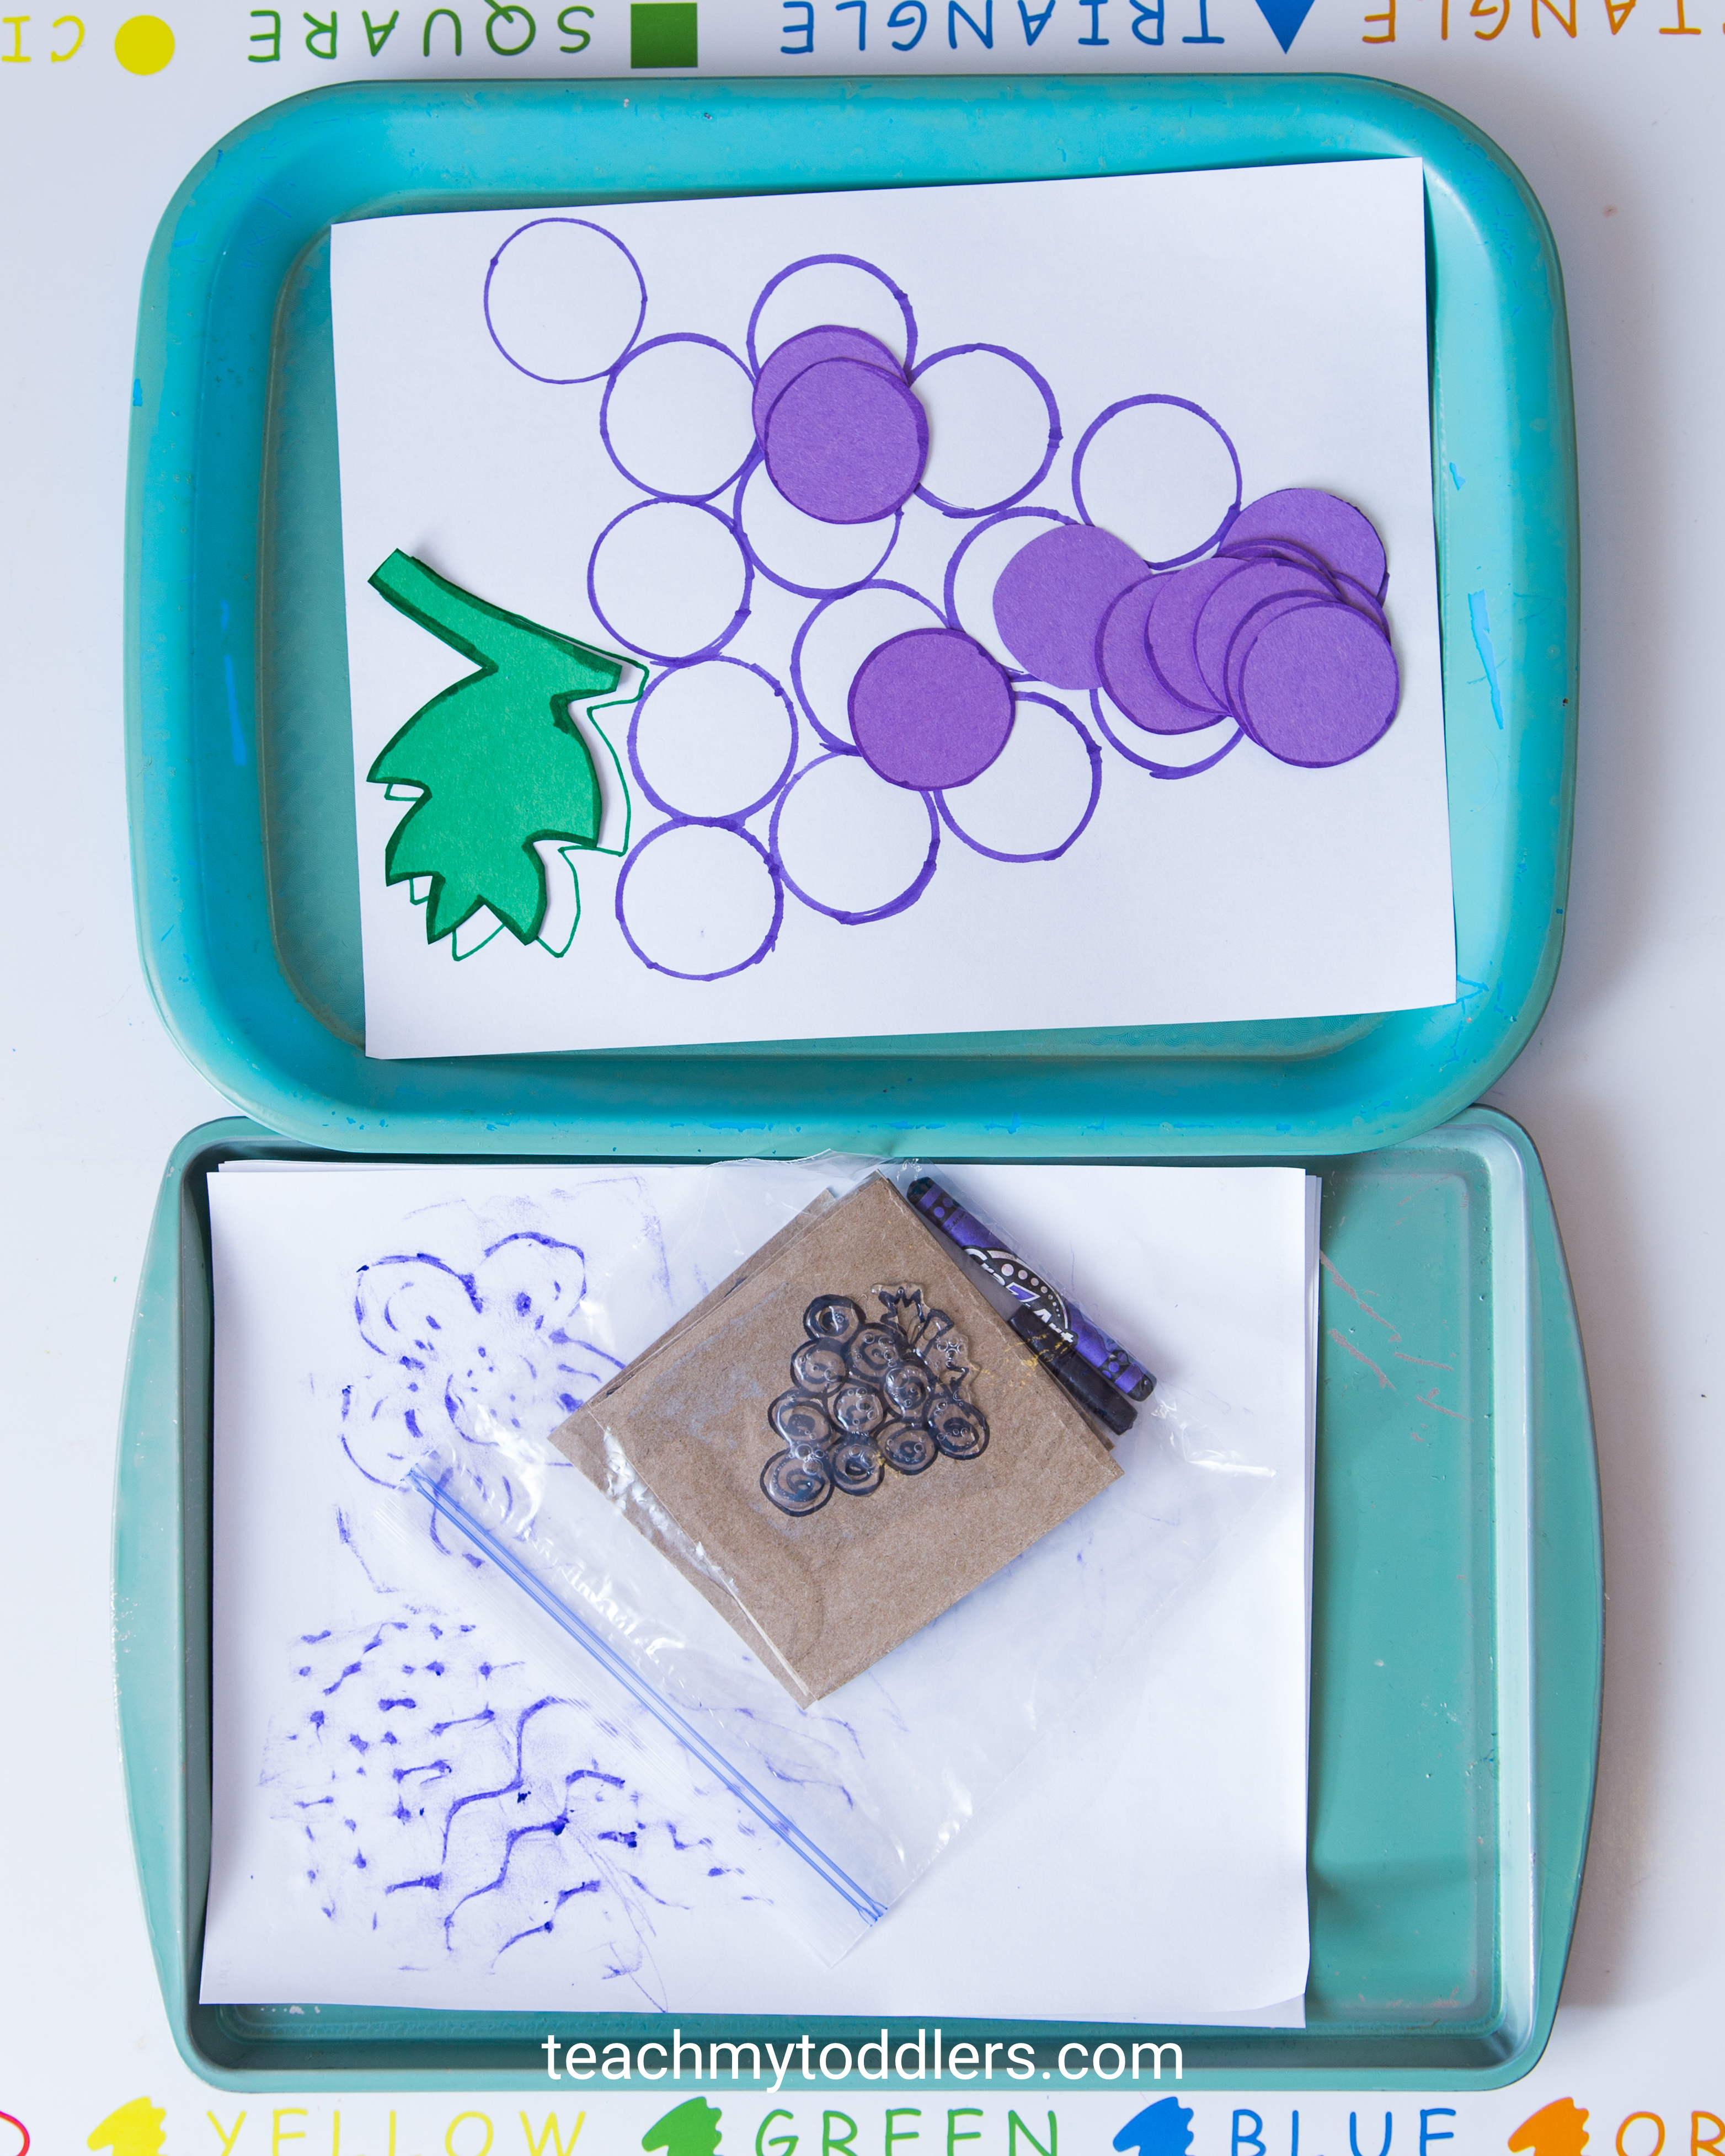 A fun activity to teach your toddler the color purple